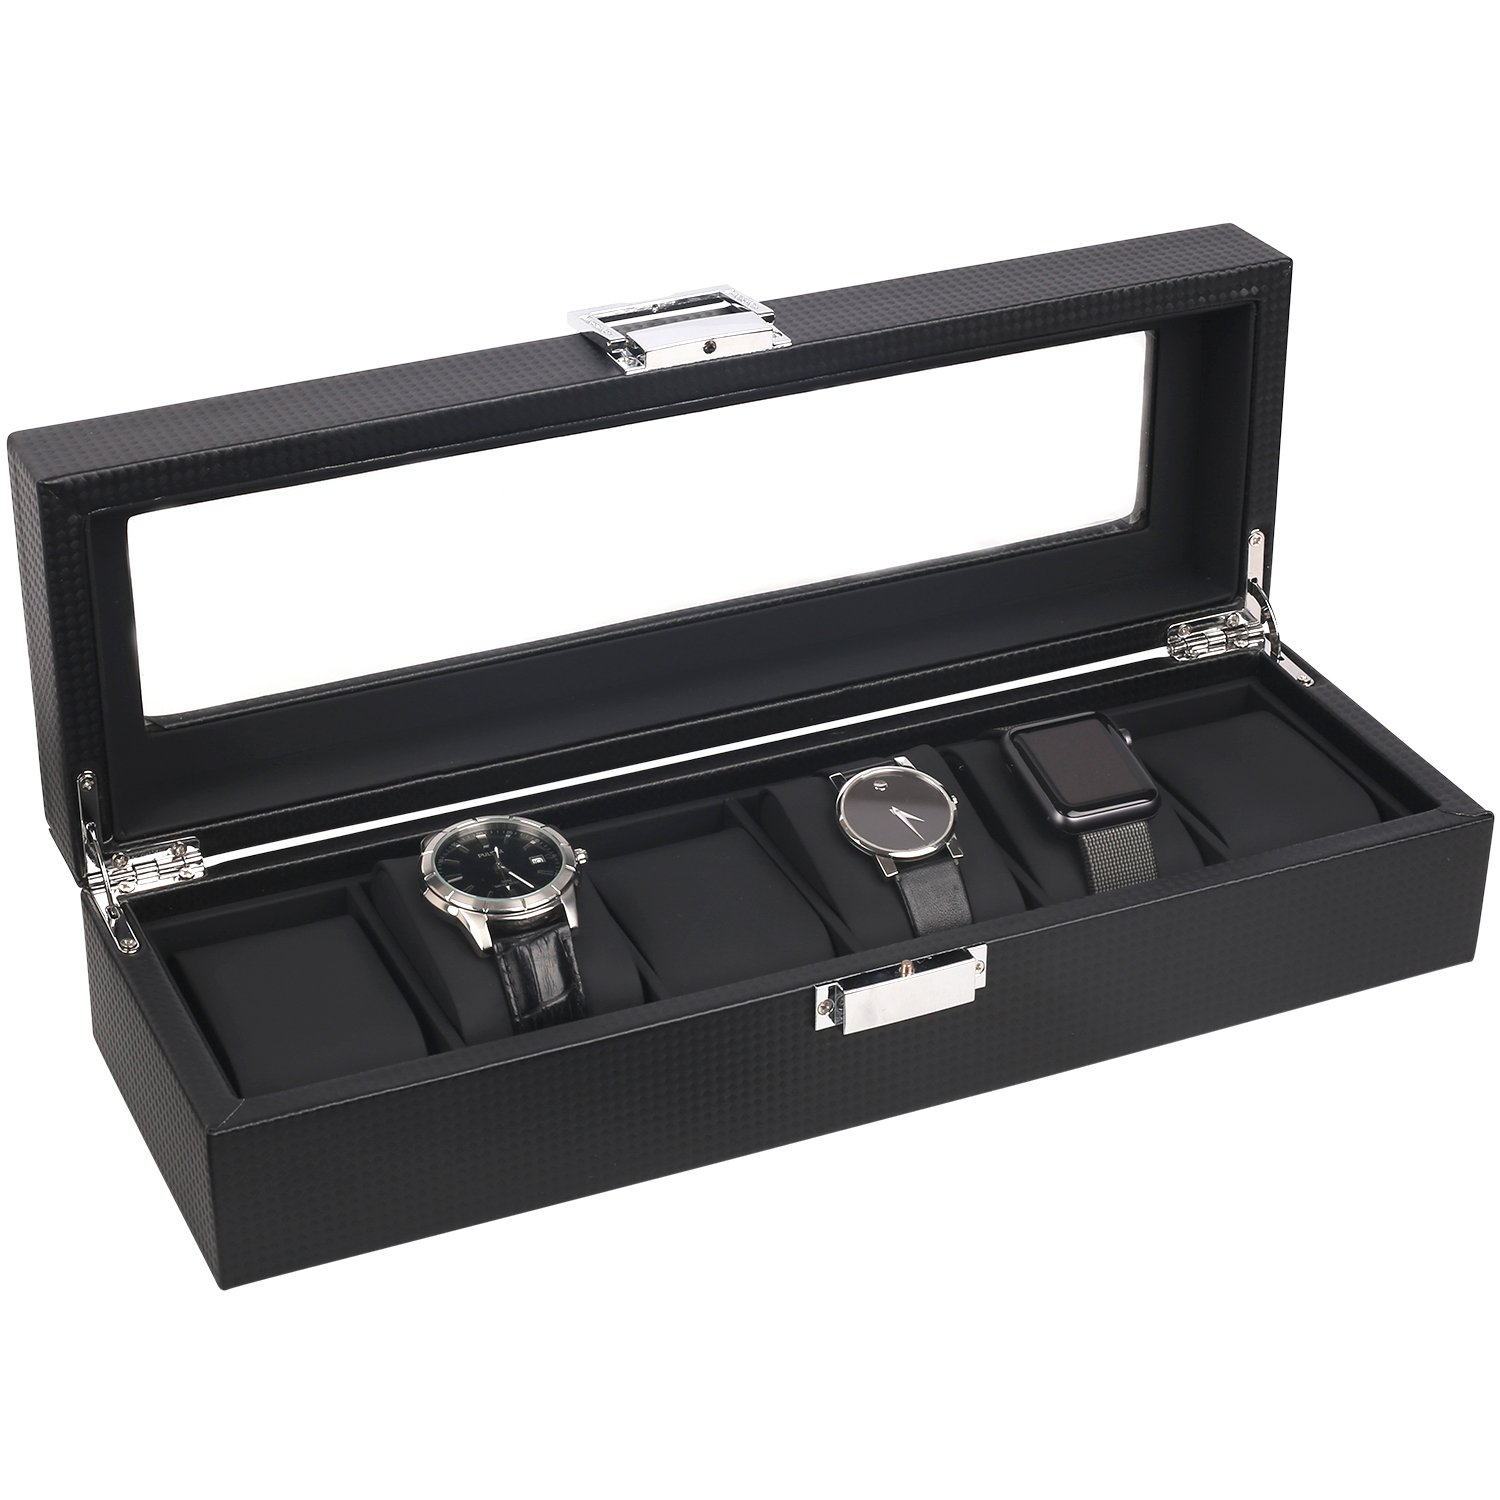 Mantello 6-Watch Display Box Carbon Fiber Design with Glass Top by Mantello